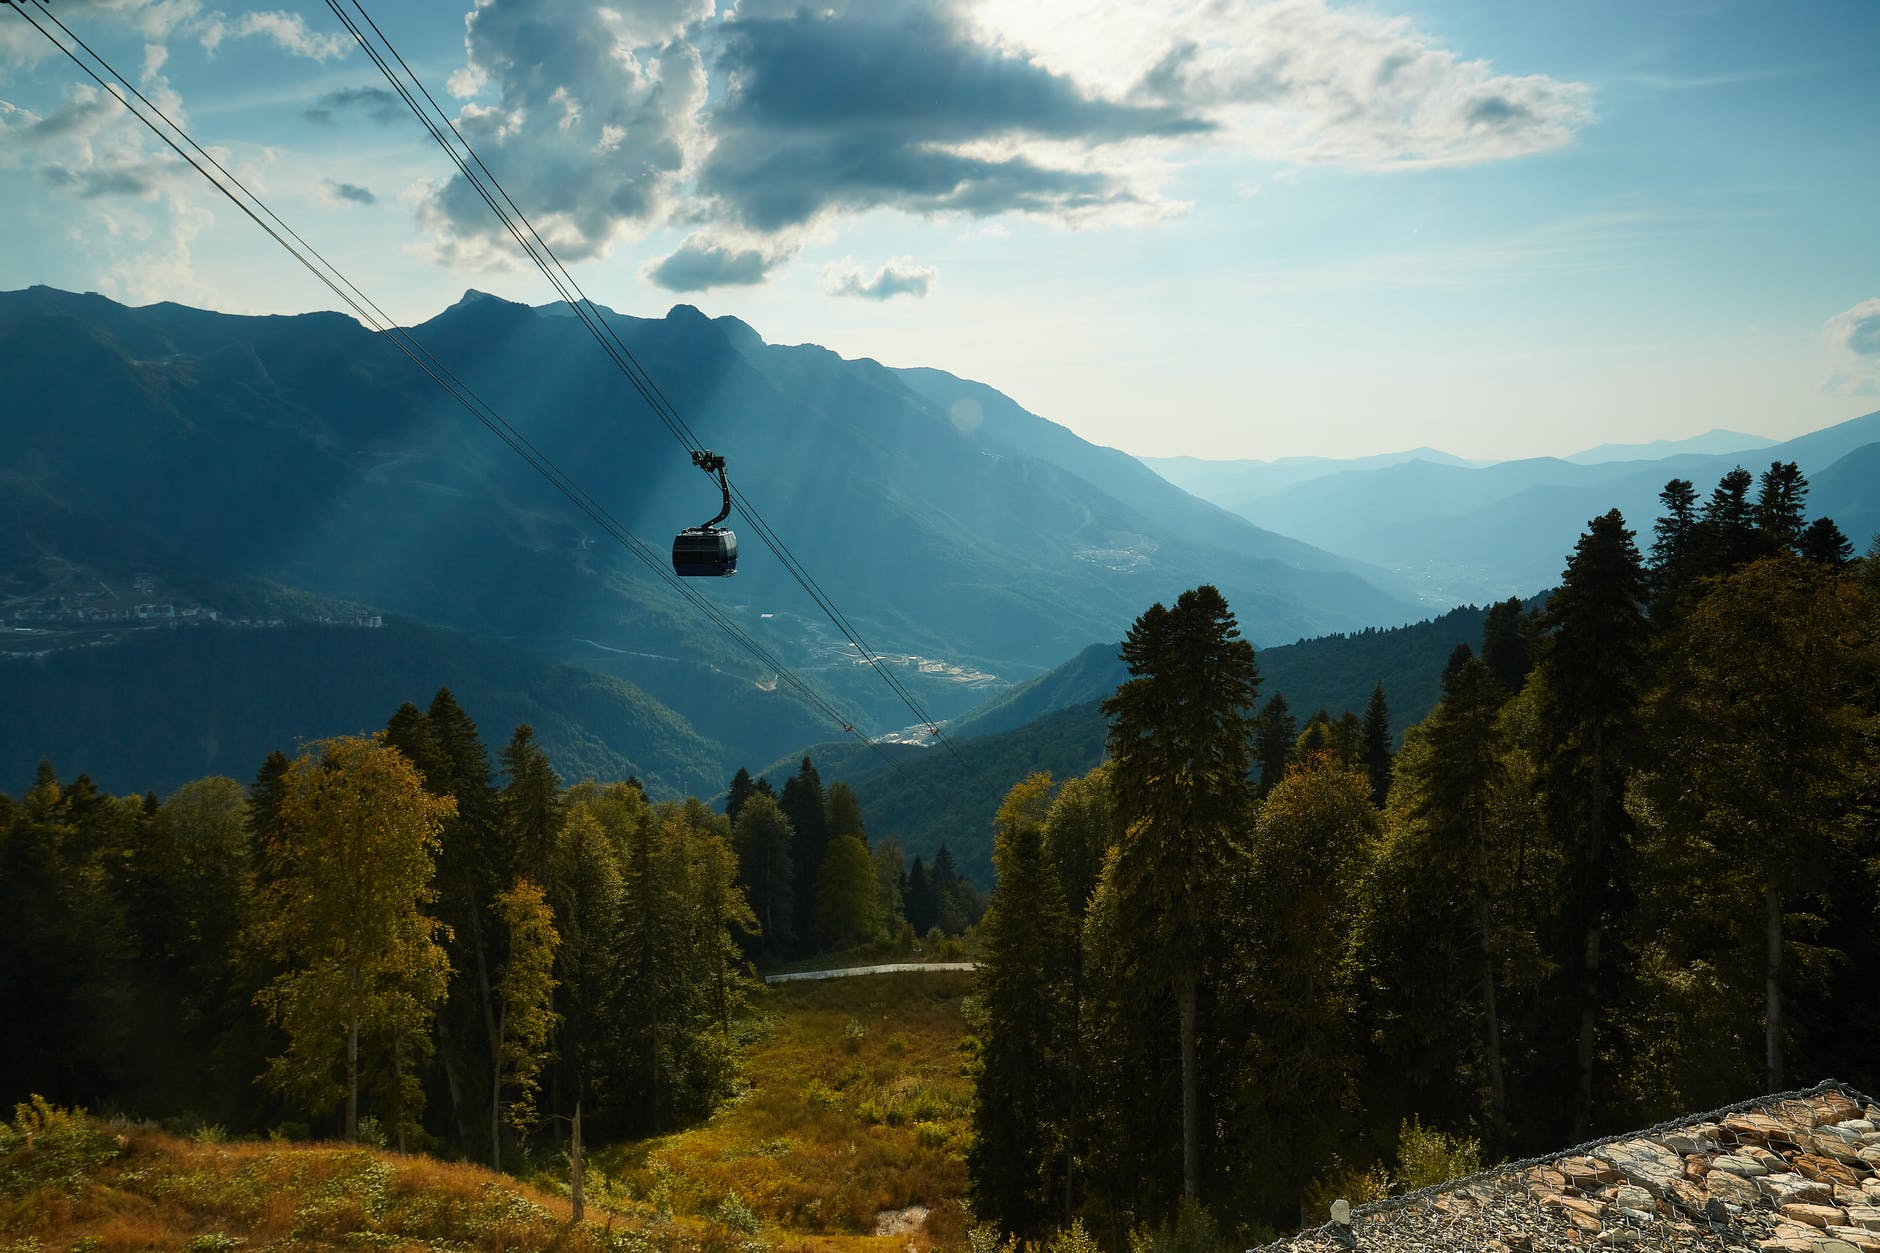 Cable Car Fell Near Lake Maggiore in Italy, 14 Casualties After Accident